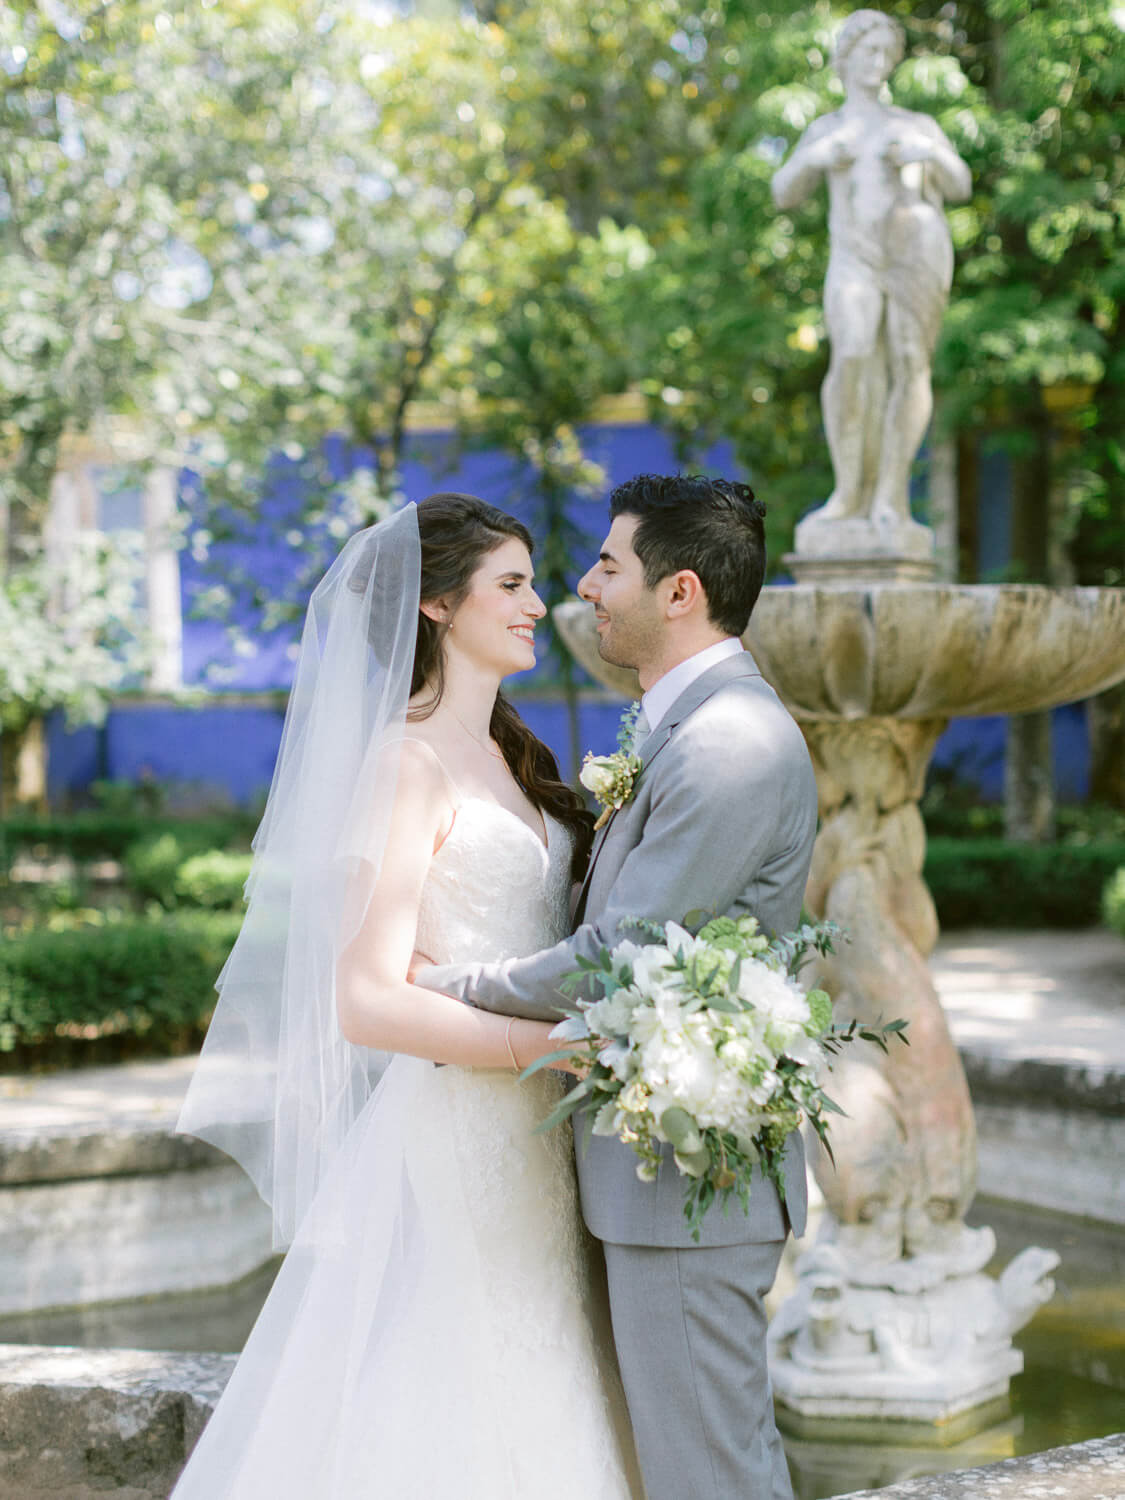 bride and groom enchanted moment by the fountain by Portugal Wedding Photographer